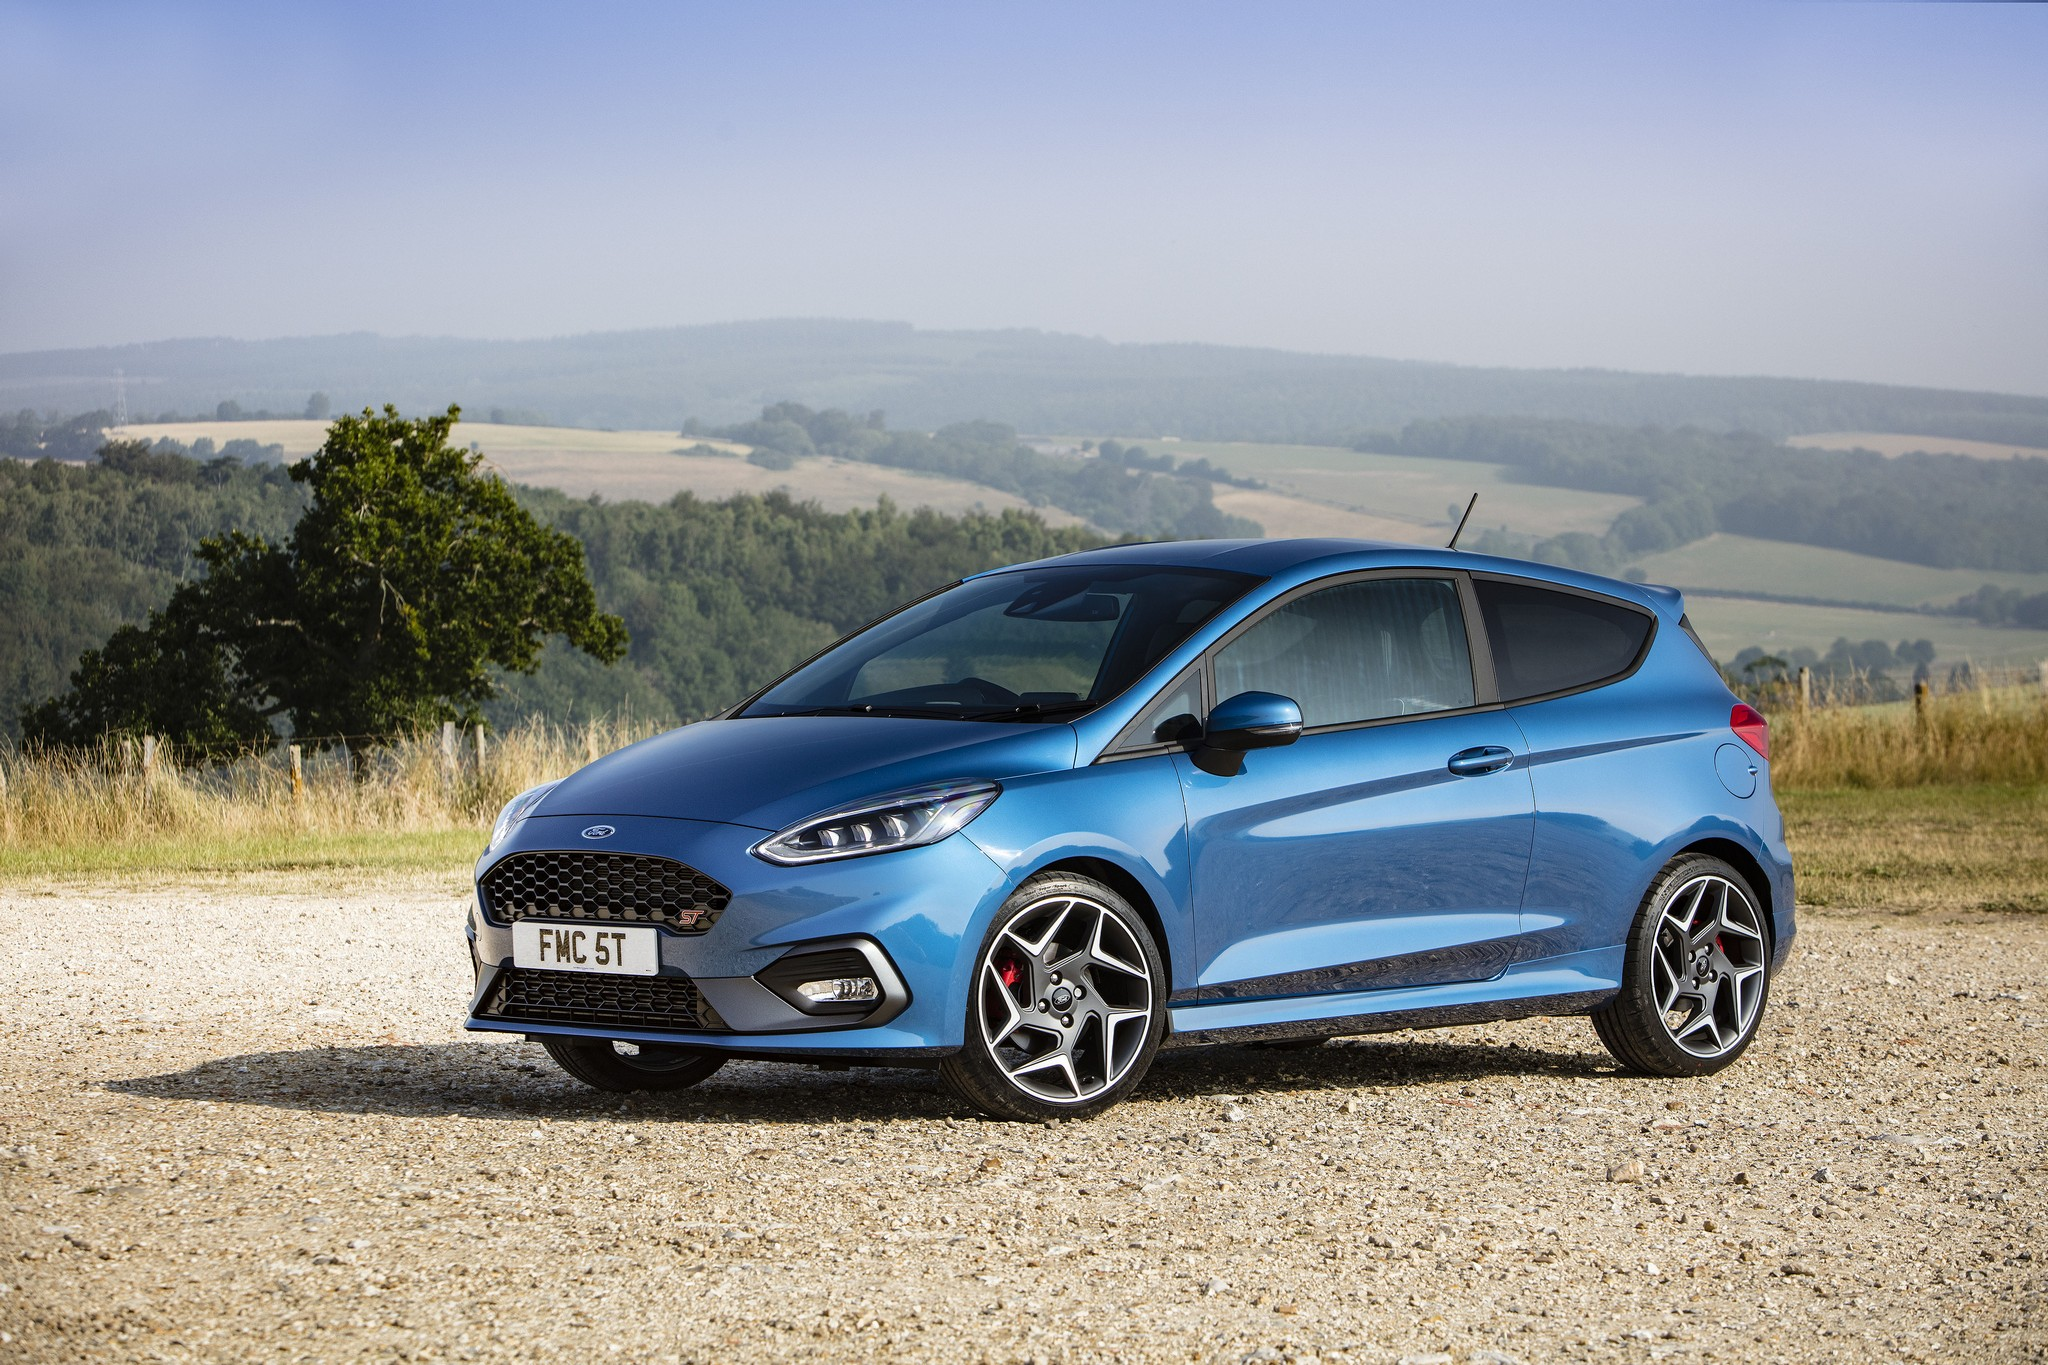 Ford Fiesta ST 1.5 - Car Review